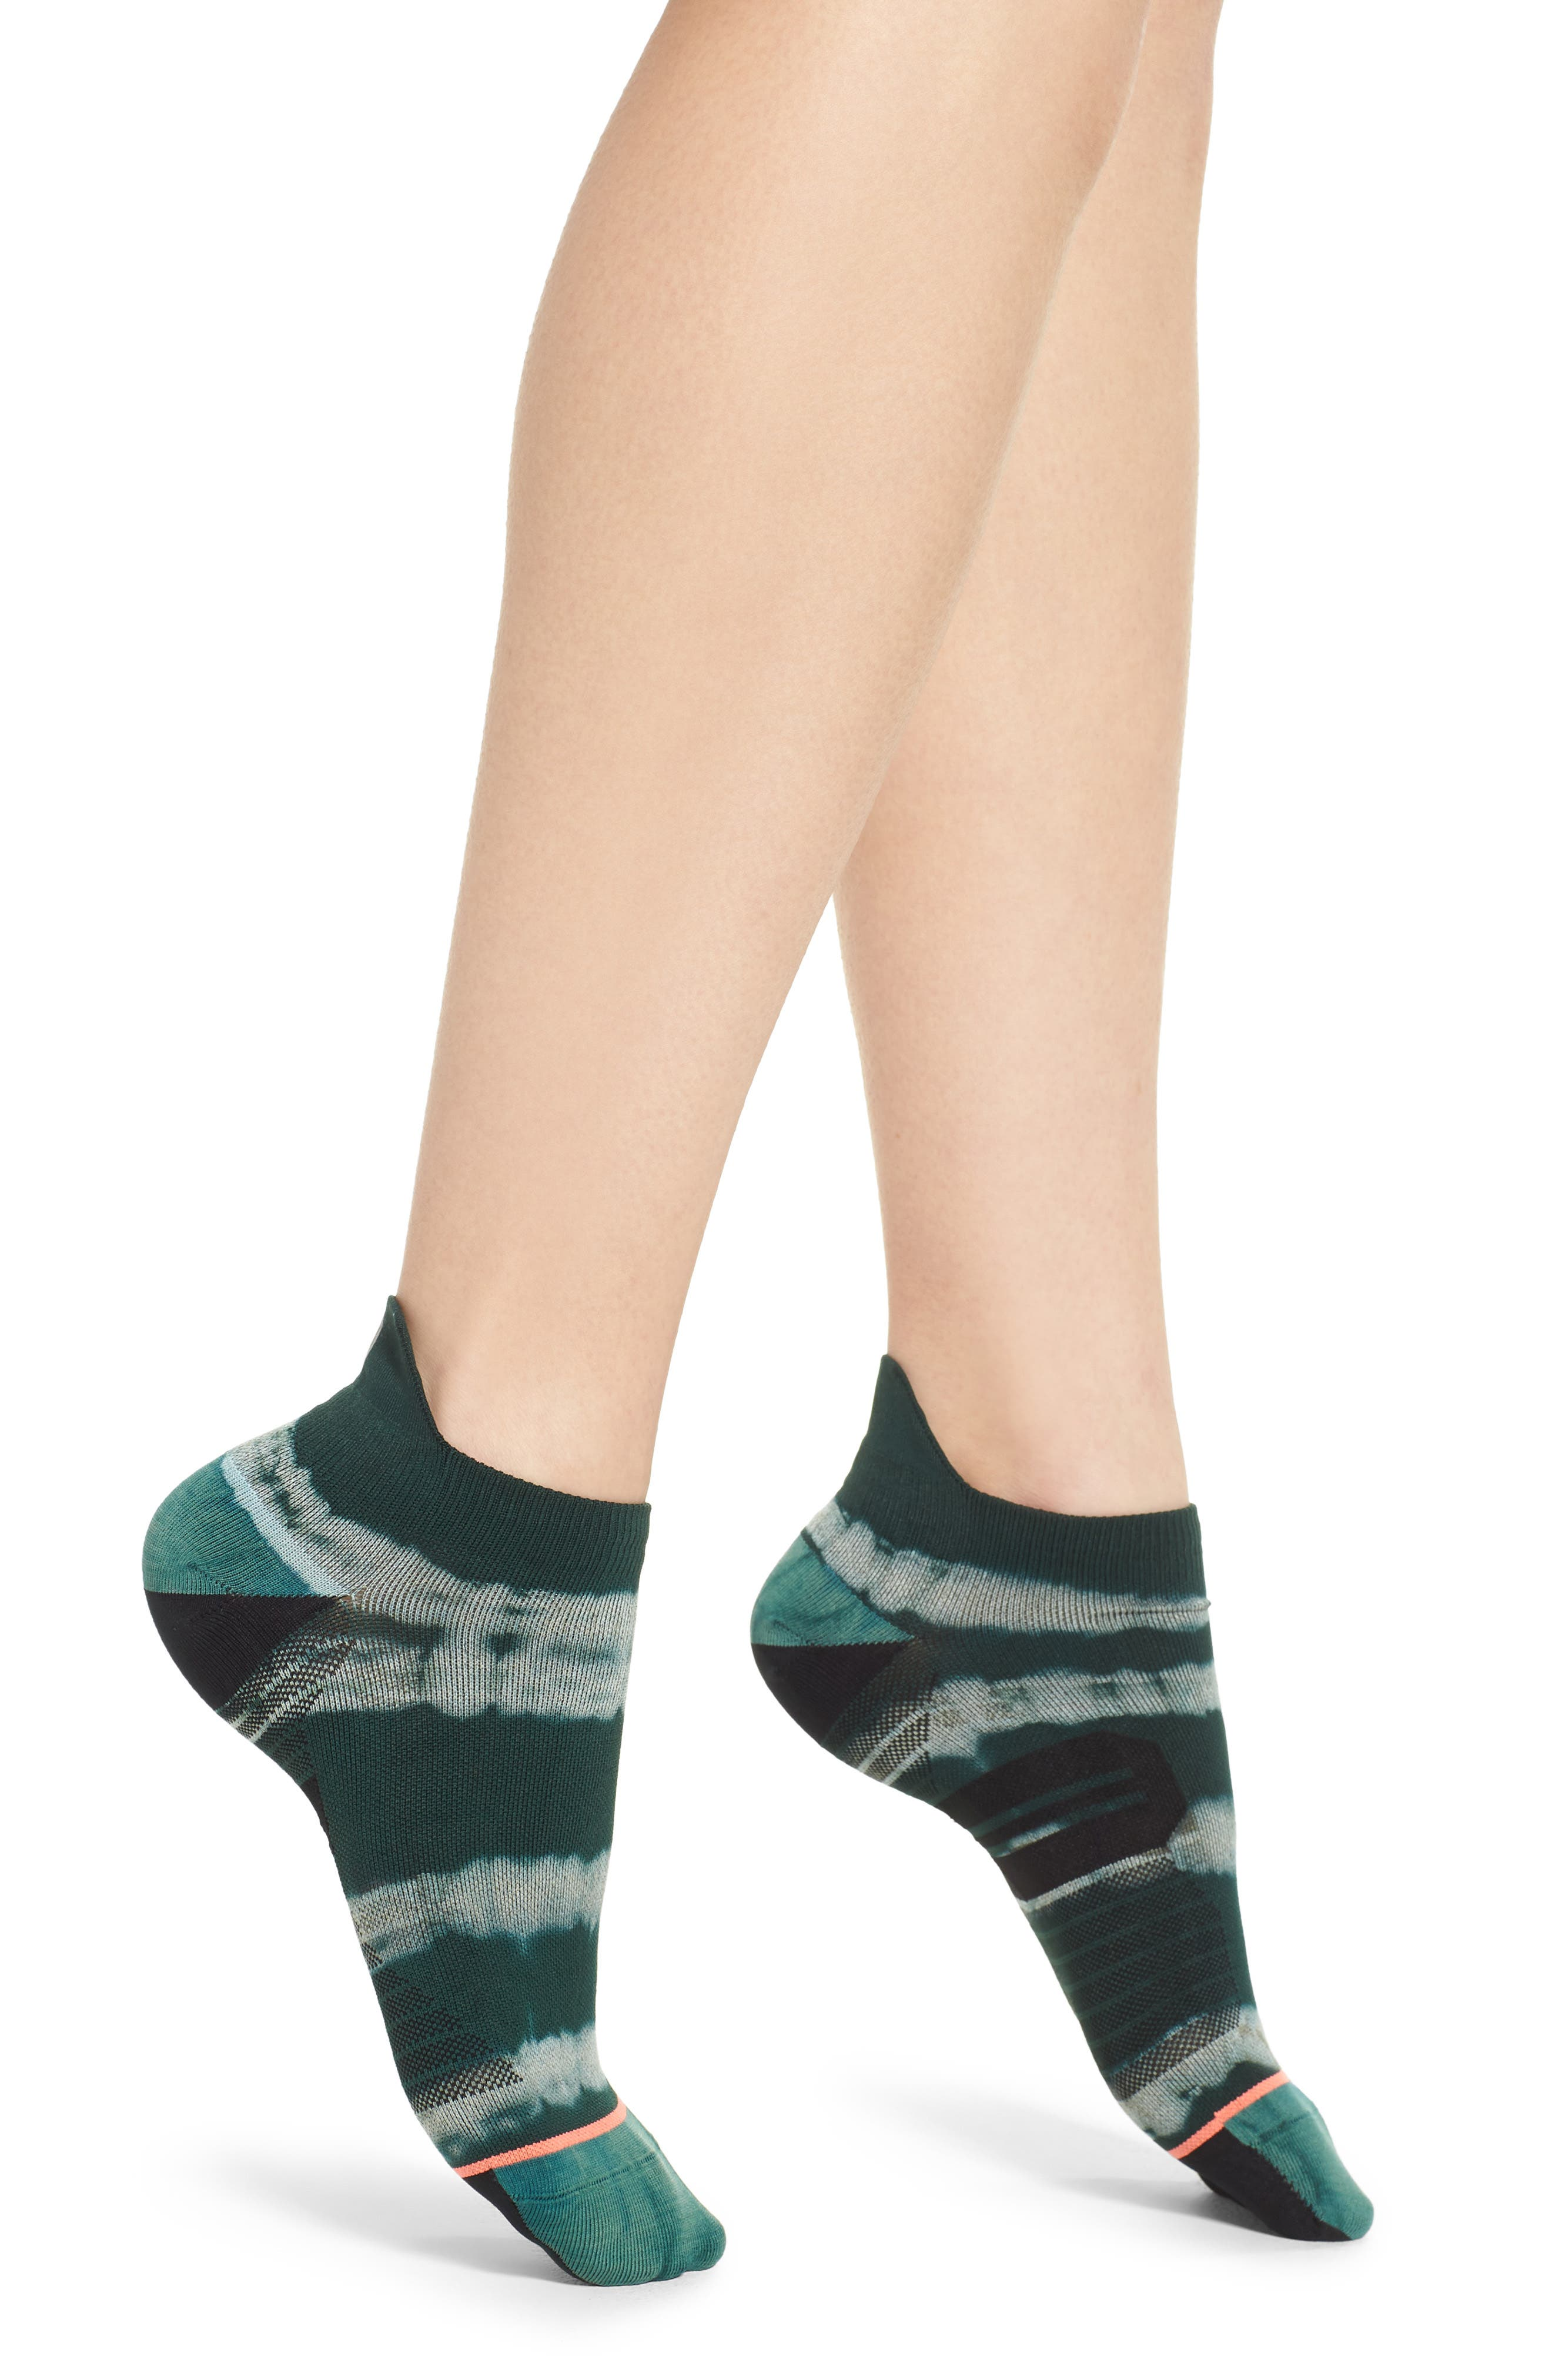 Downhill Tab Running Socks,                         Main,                         color, TEAL